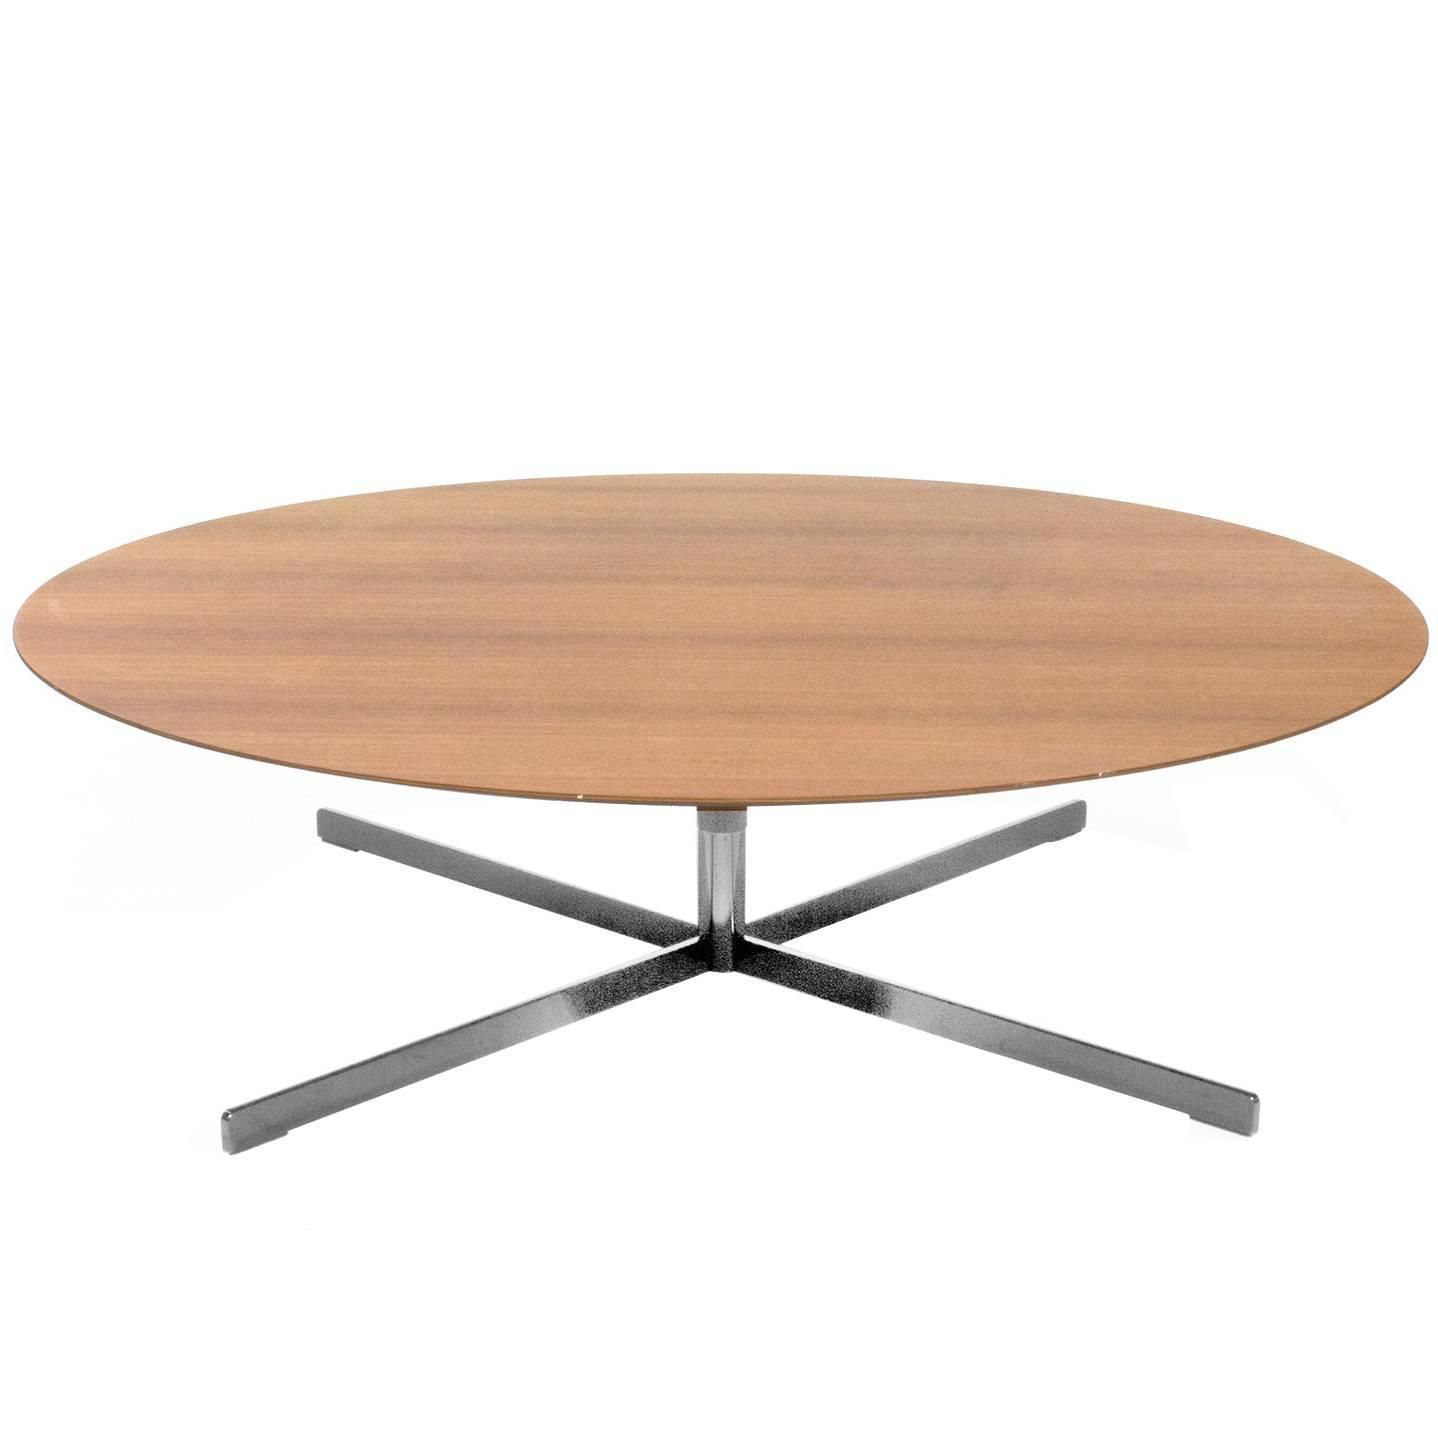 Wood Top Bob Low Coffee Table by Jean Marie Massaud for Poltrona